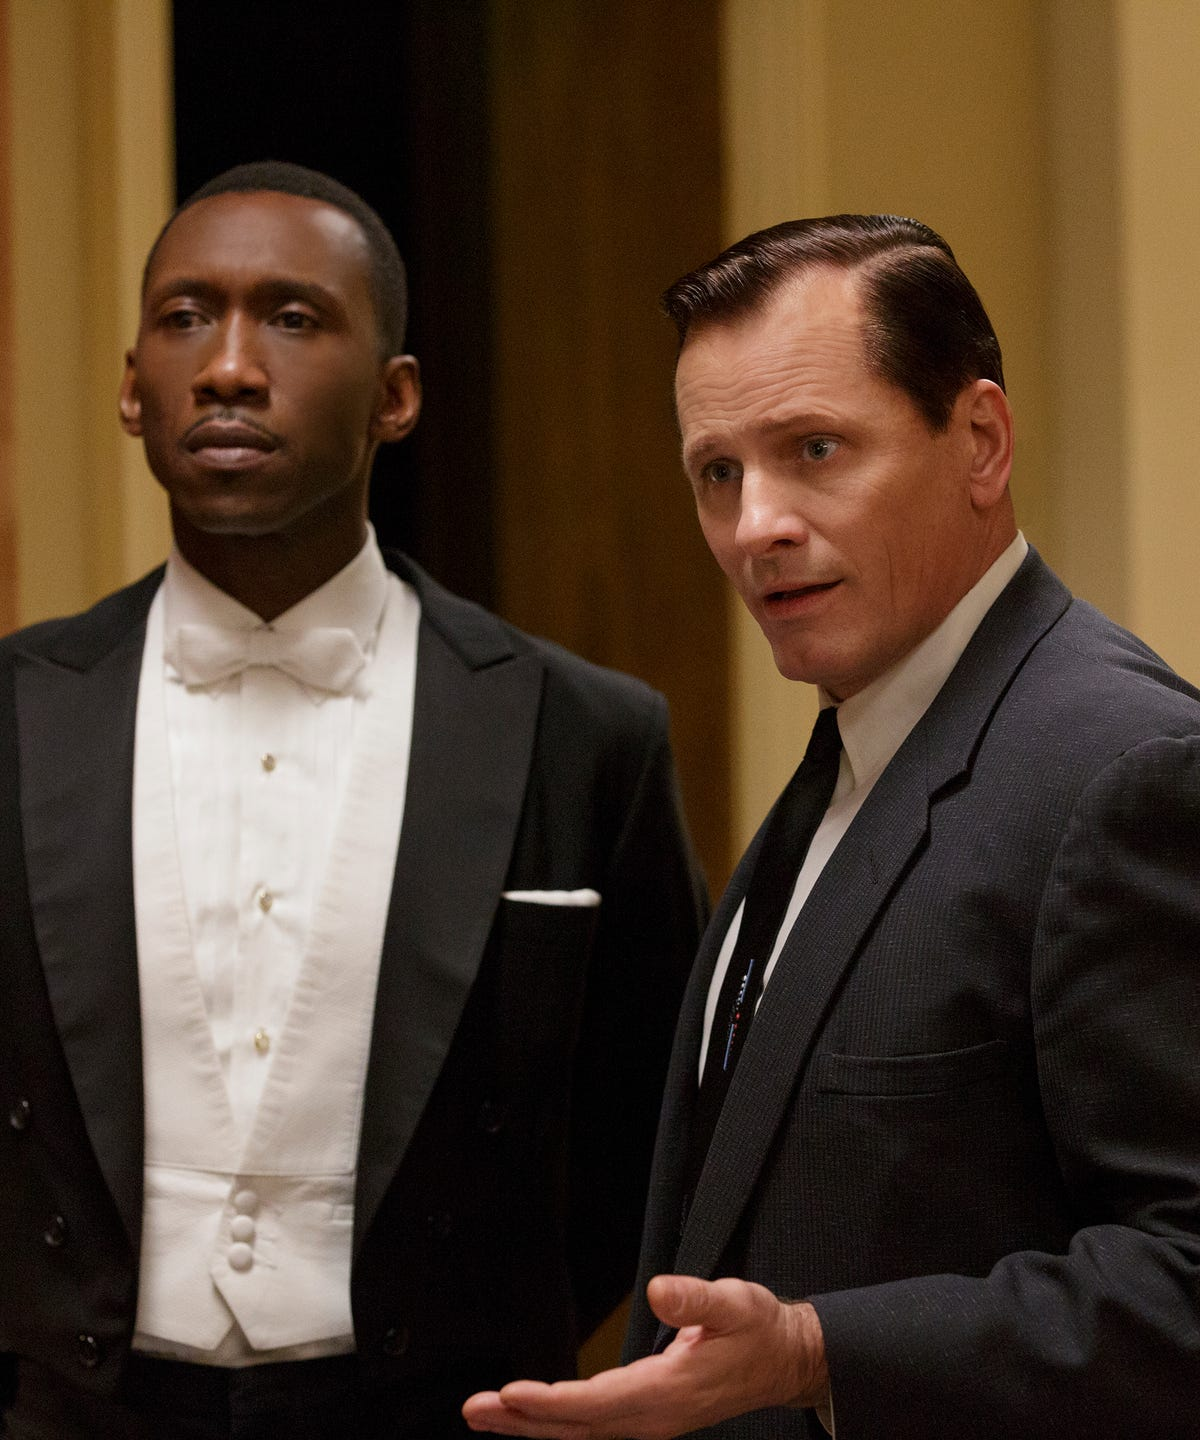 Green Book Controversy & True Story Backlash, Explained